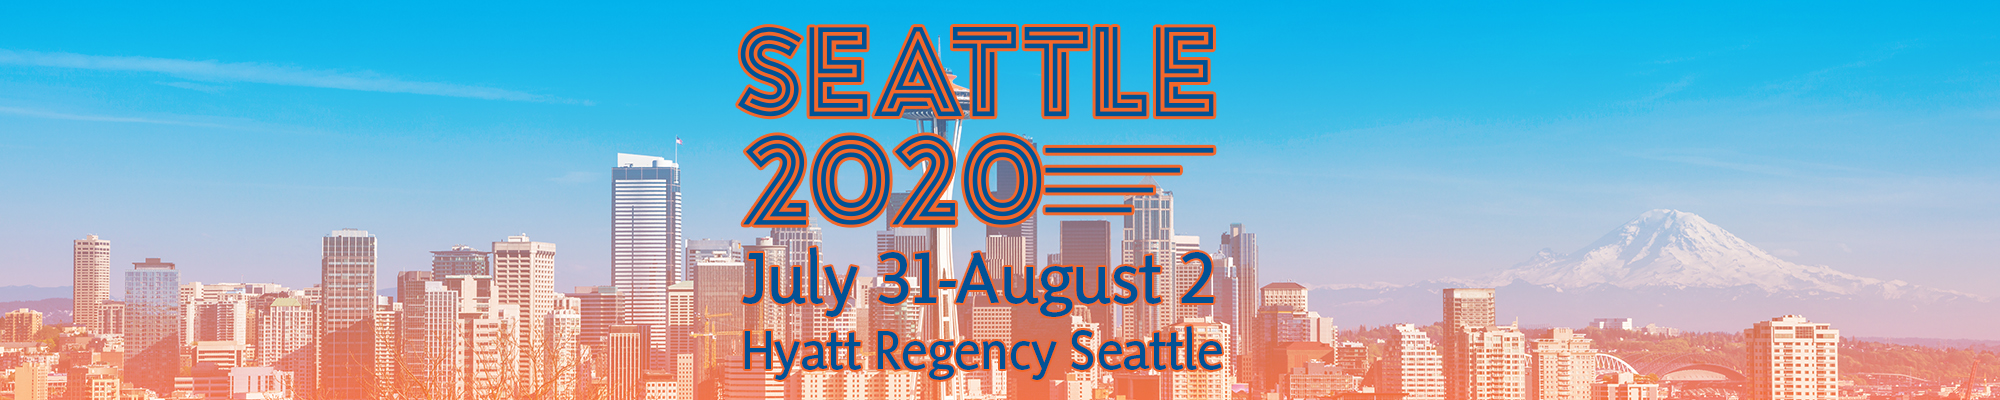 27th Annual OCD Conference. July 31-August 2, 2020 in Seattle, WA